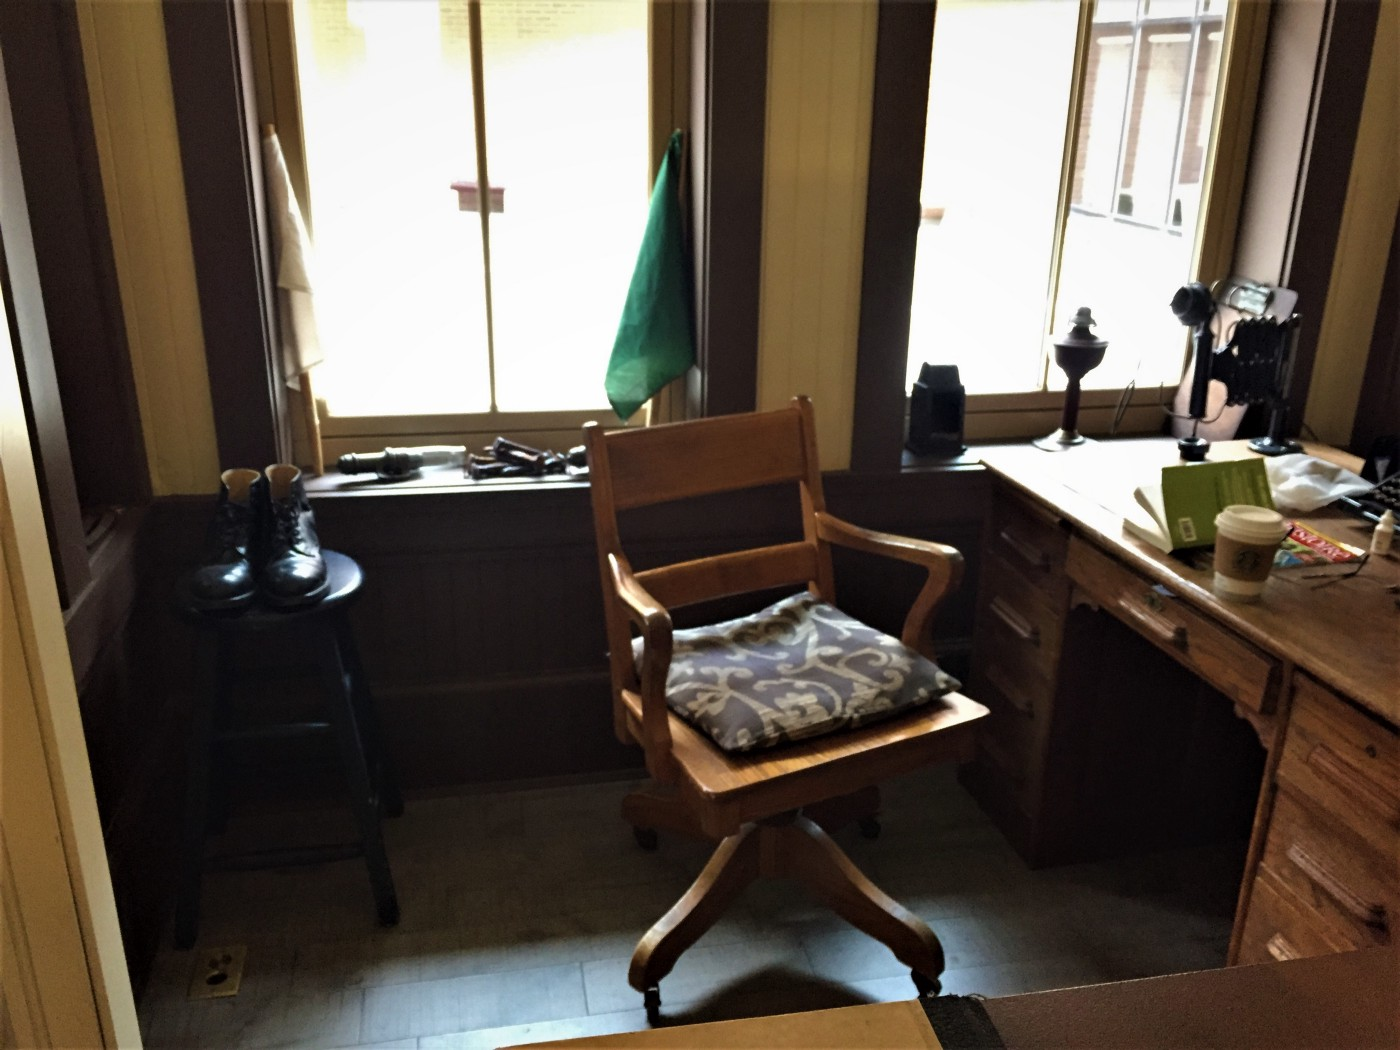 Working replica office of a railway ticket master. Antique items such as boots, chair, desk, party-line phone and lamp in the top right corner. Note: Starbucks cup on desk probably not authentic to the turn of the century time period